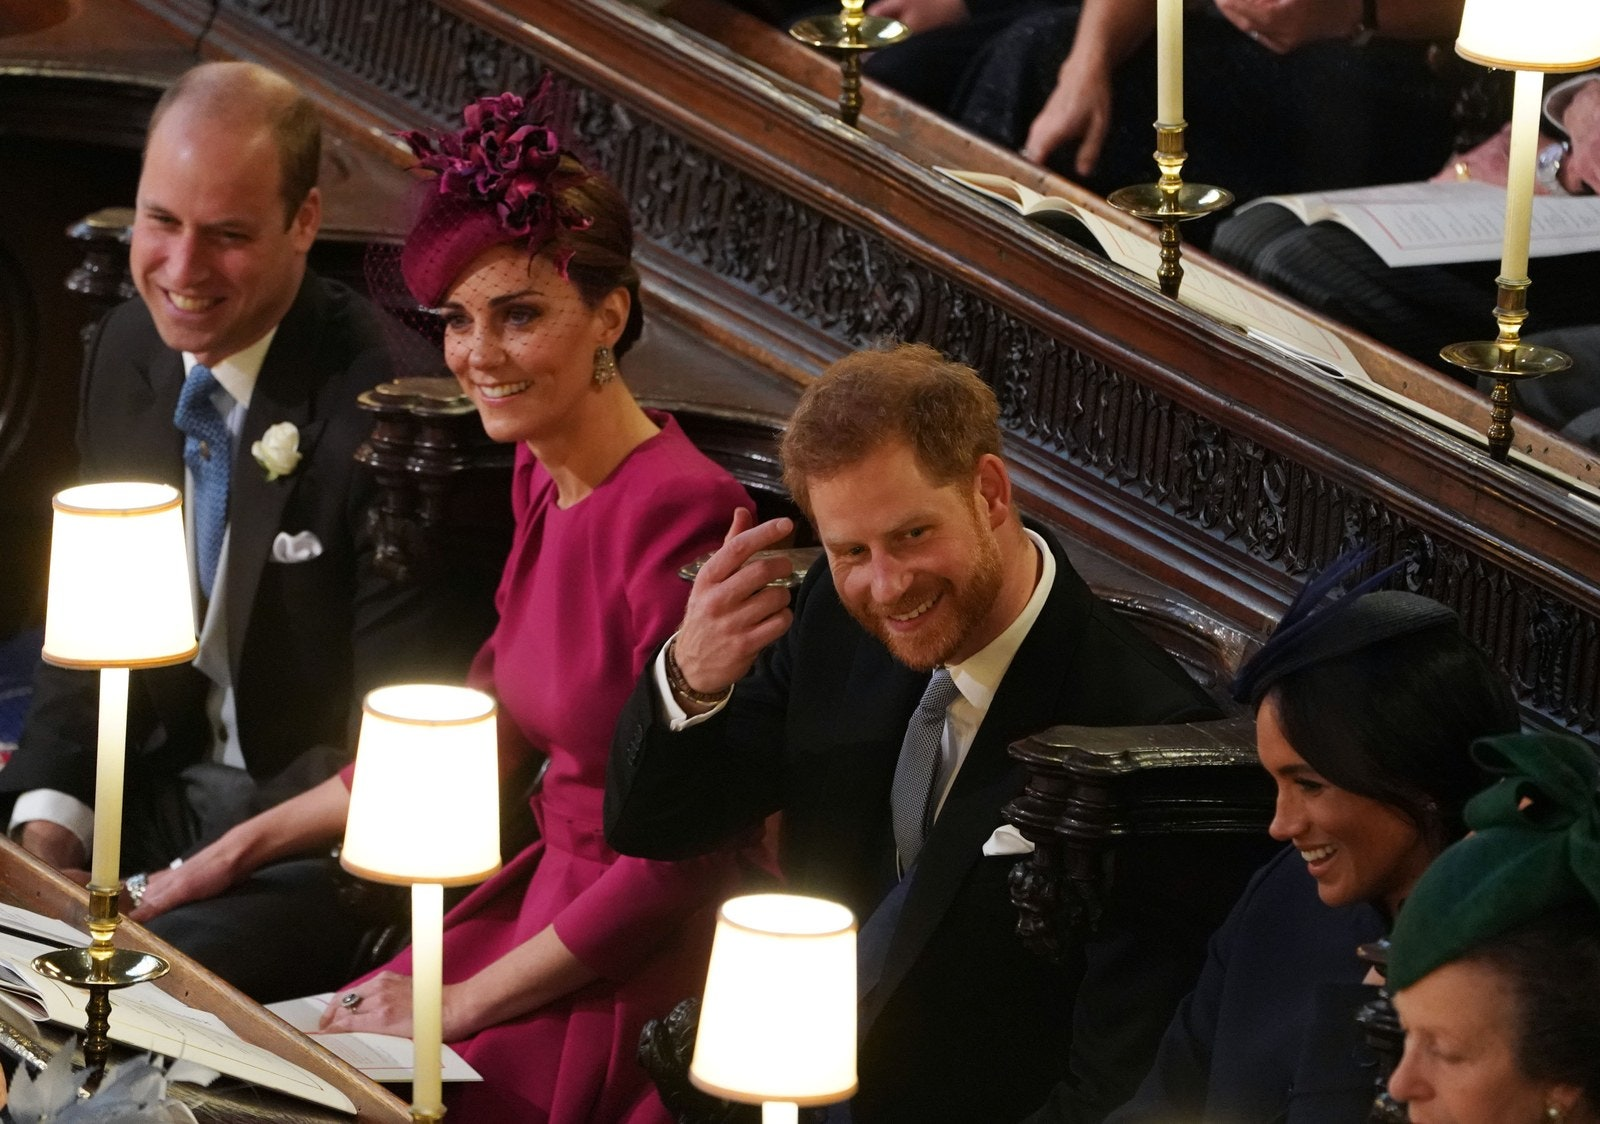 Prince William Kate Middleton Prince Harry Meghan Markle at Princess Eugenie's wedding